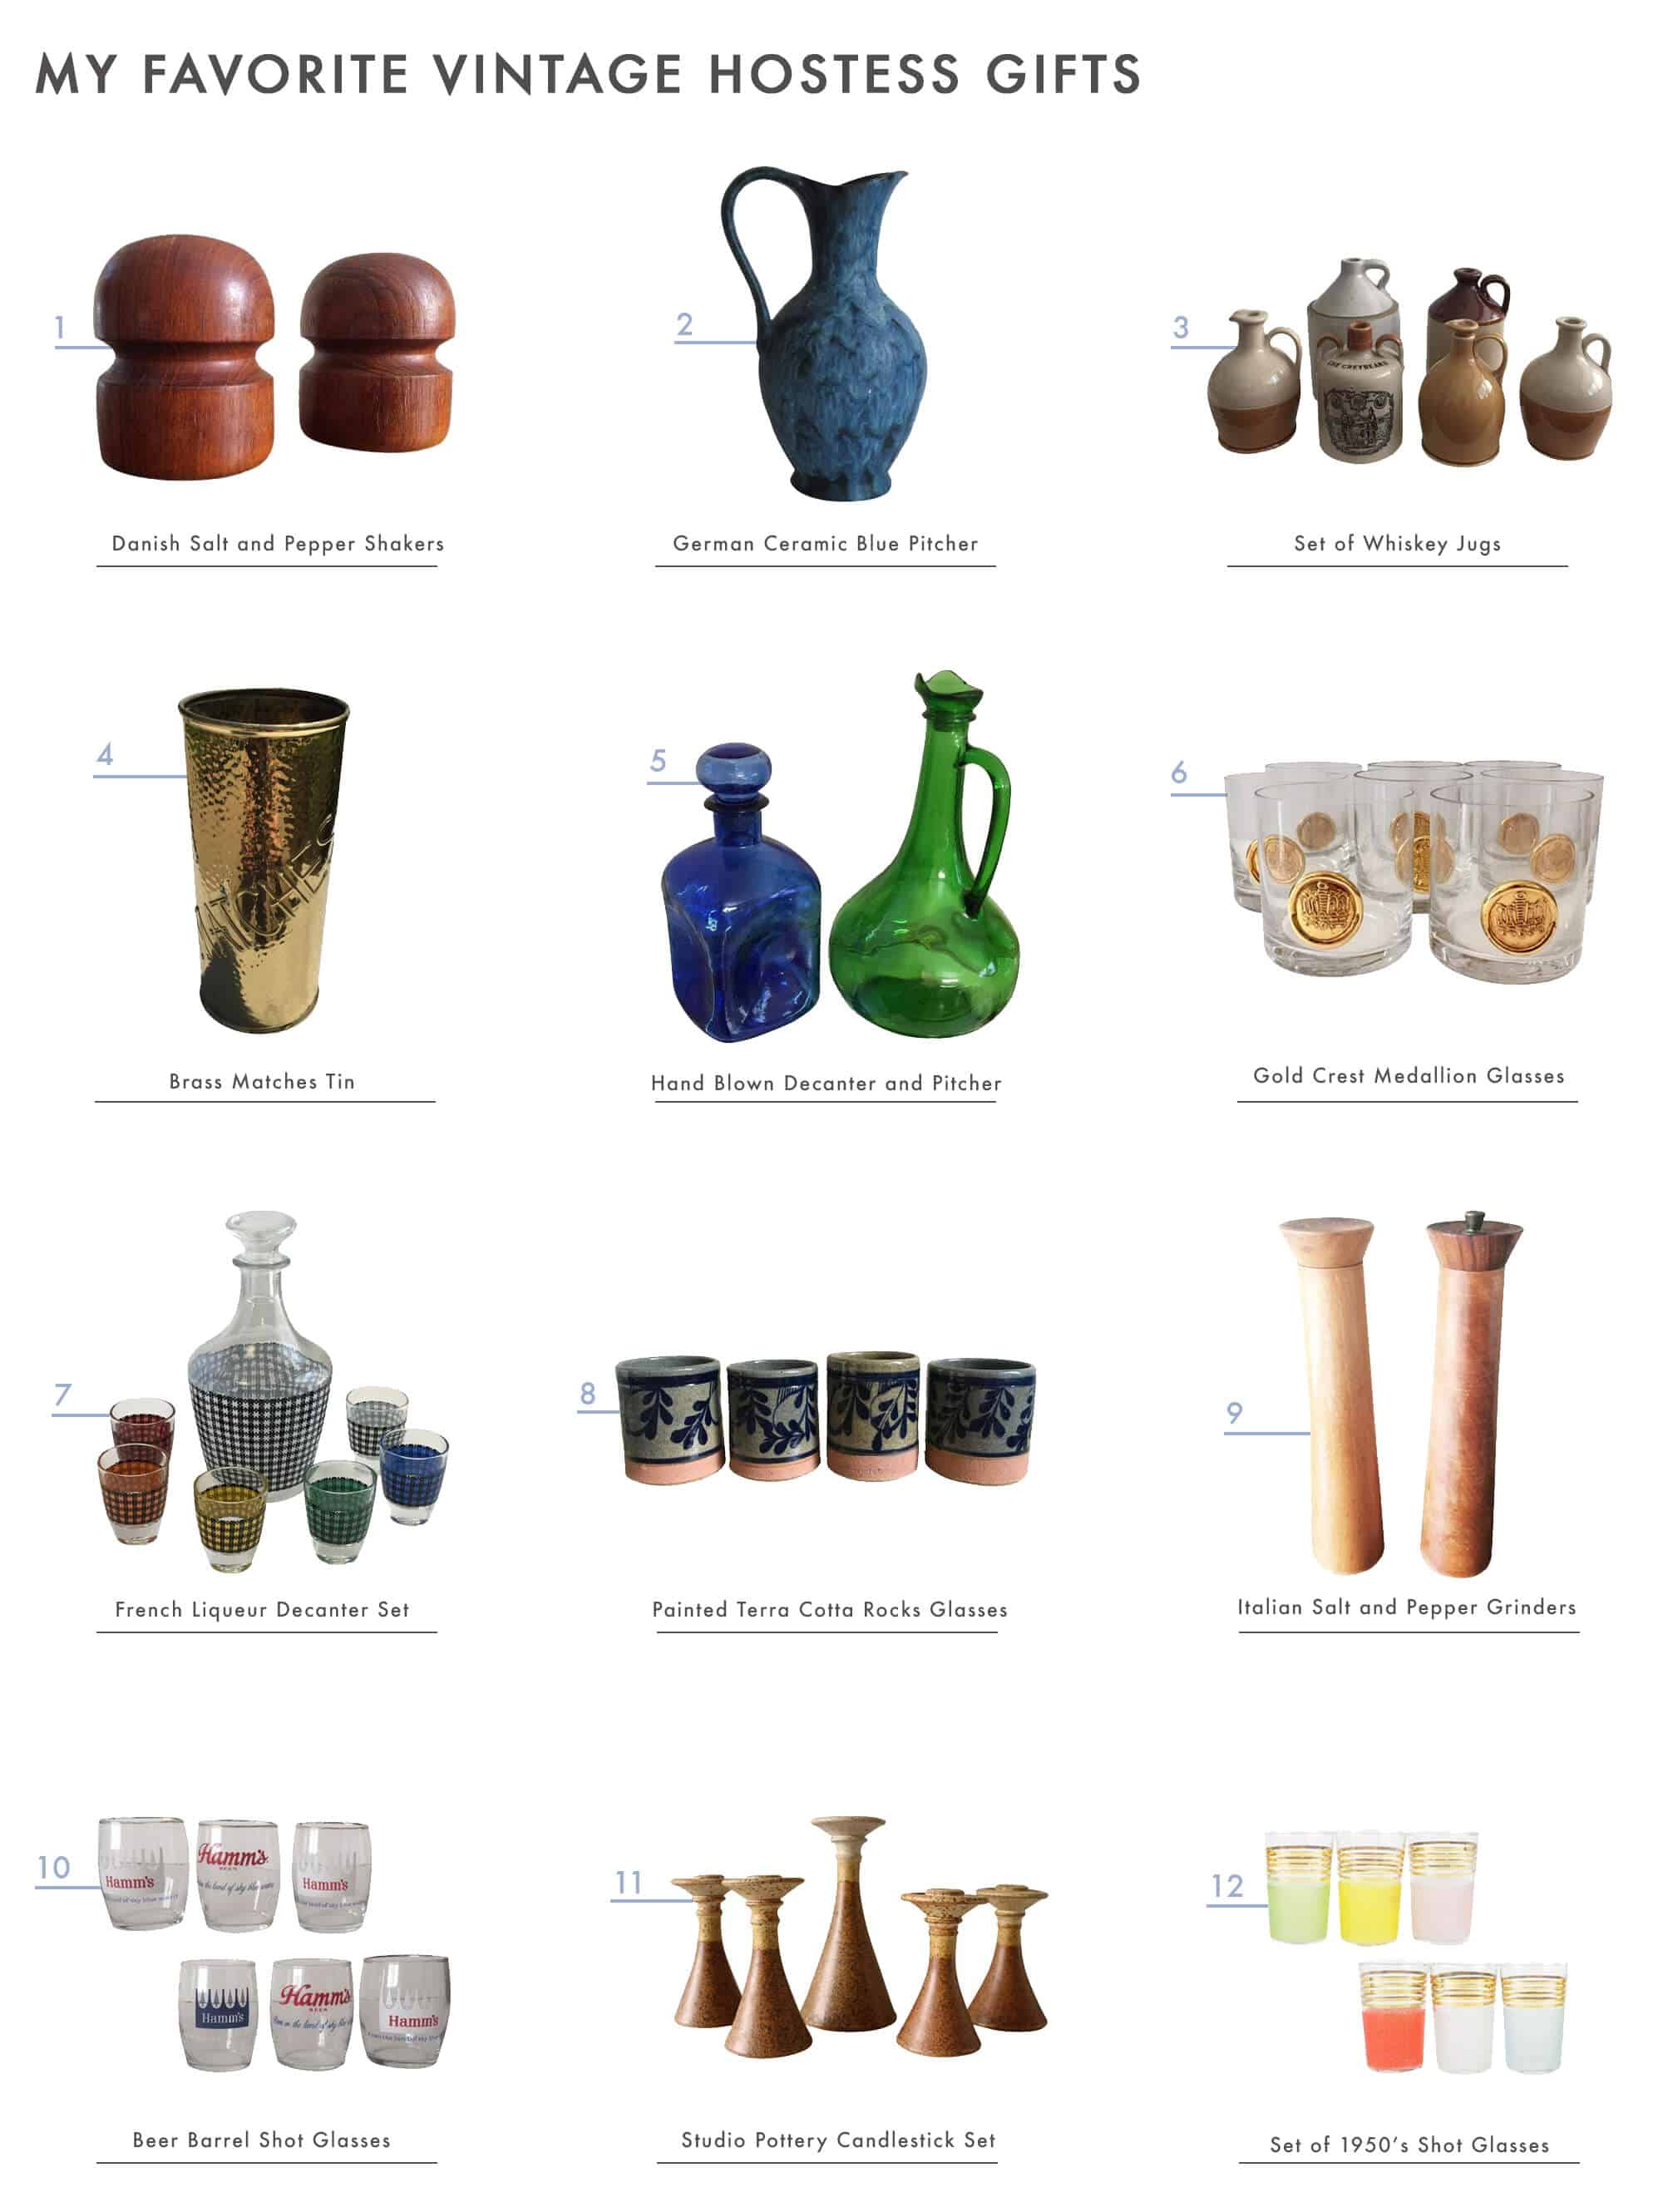 chairish_hostess-gifts_vintage_midcentury-modern_rounduop_gift-guide_emily-henderson_1